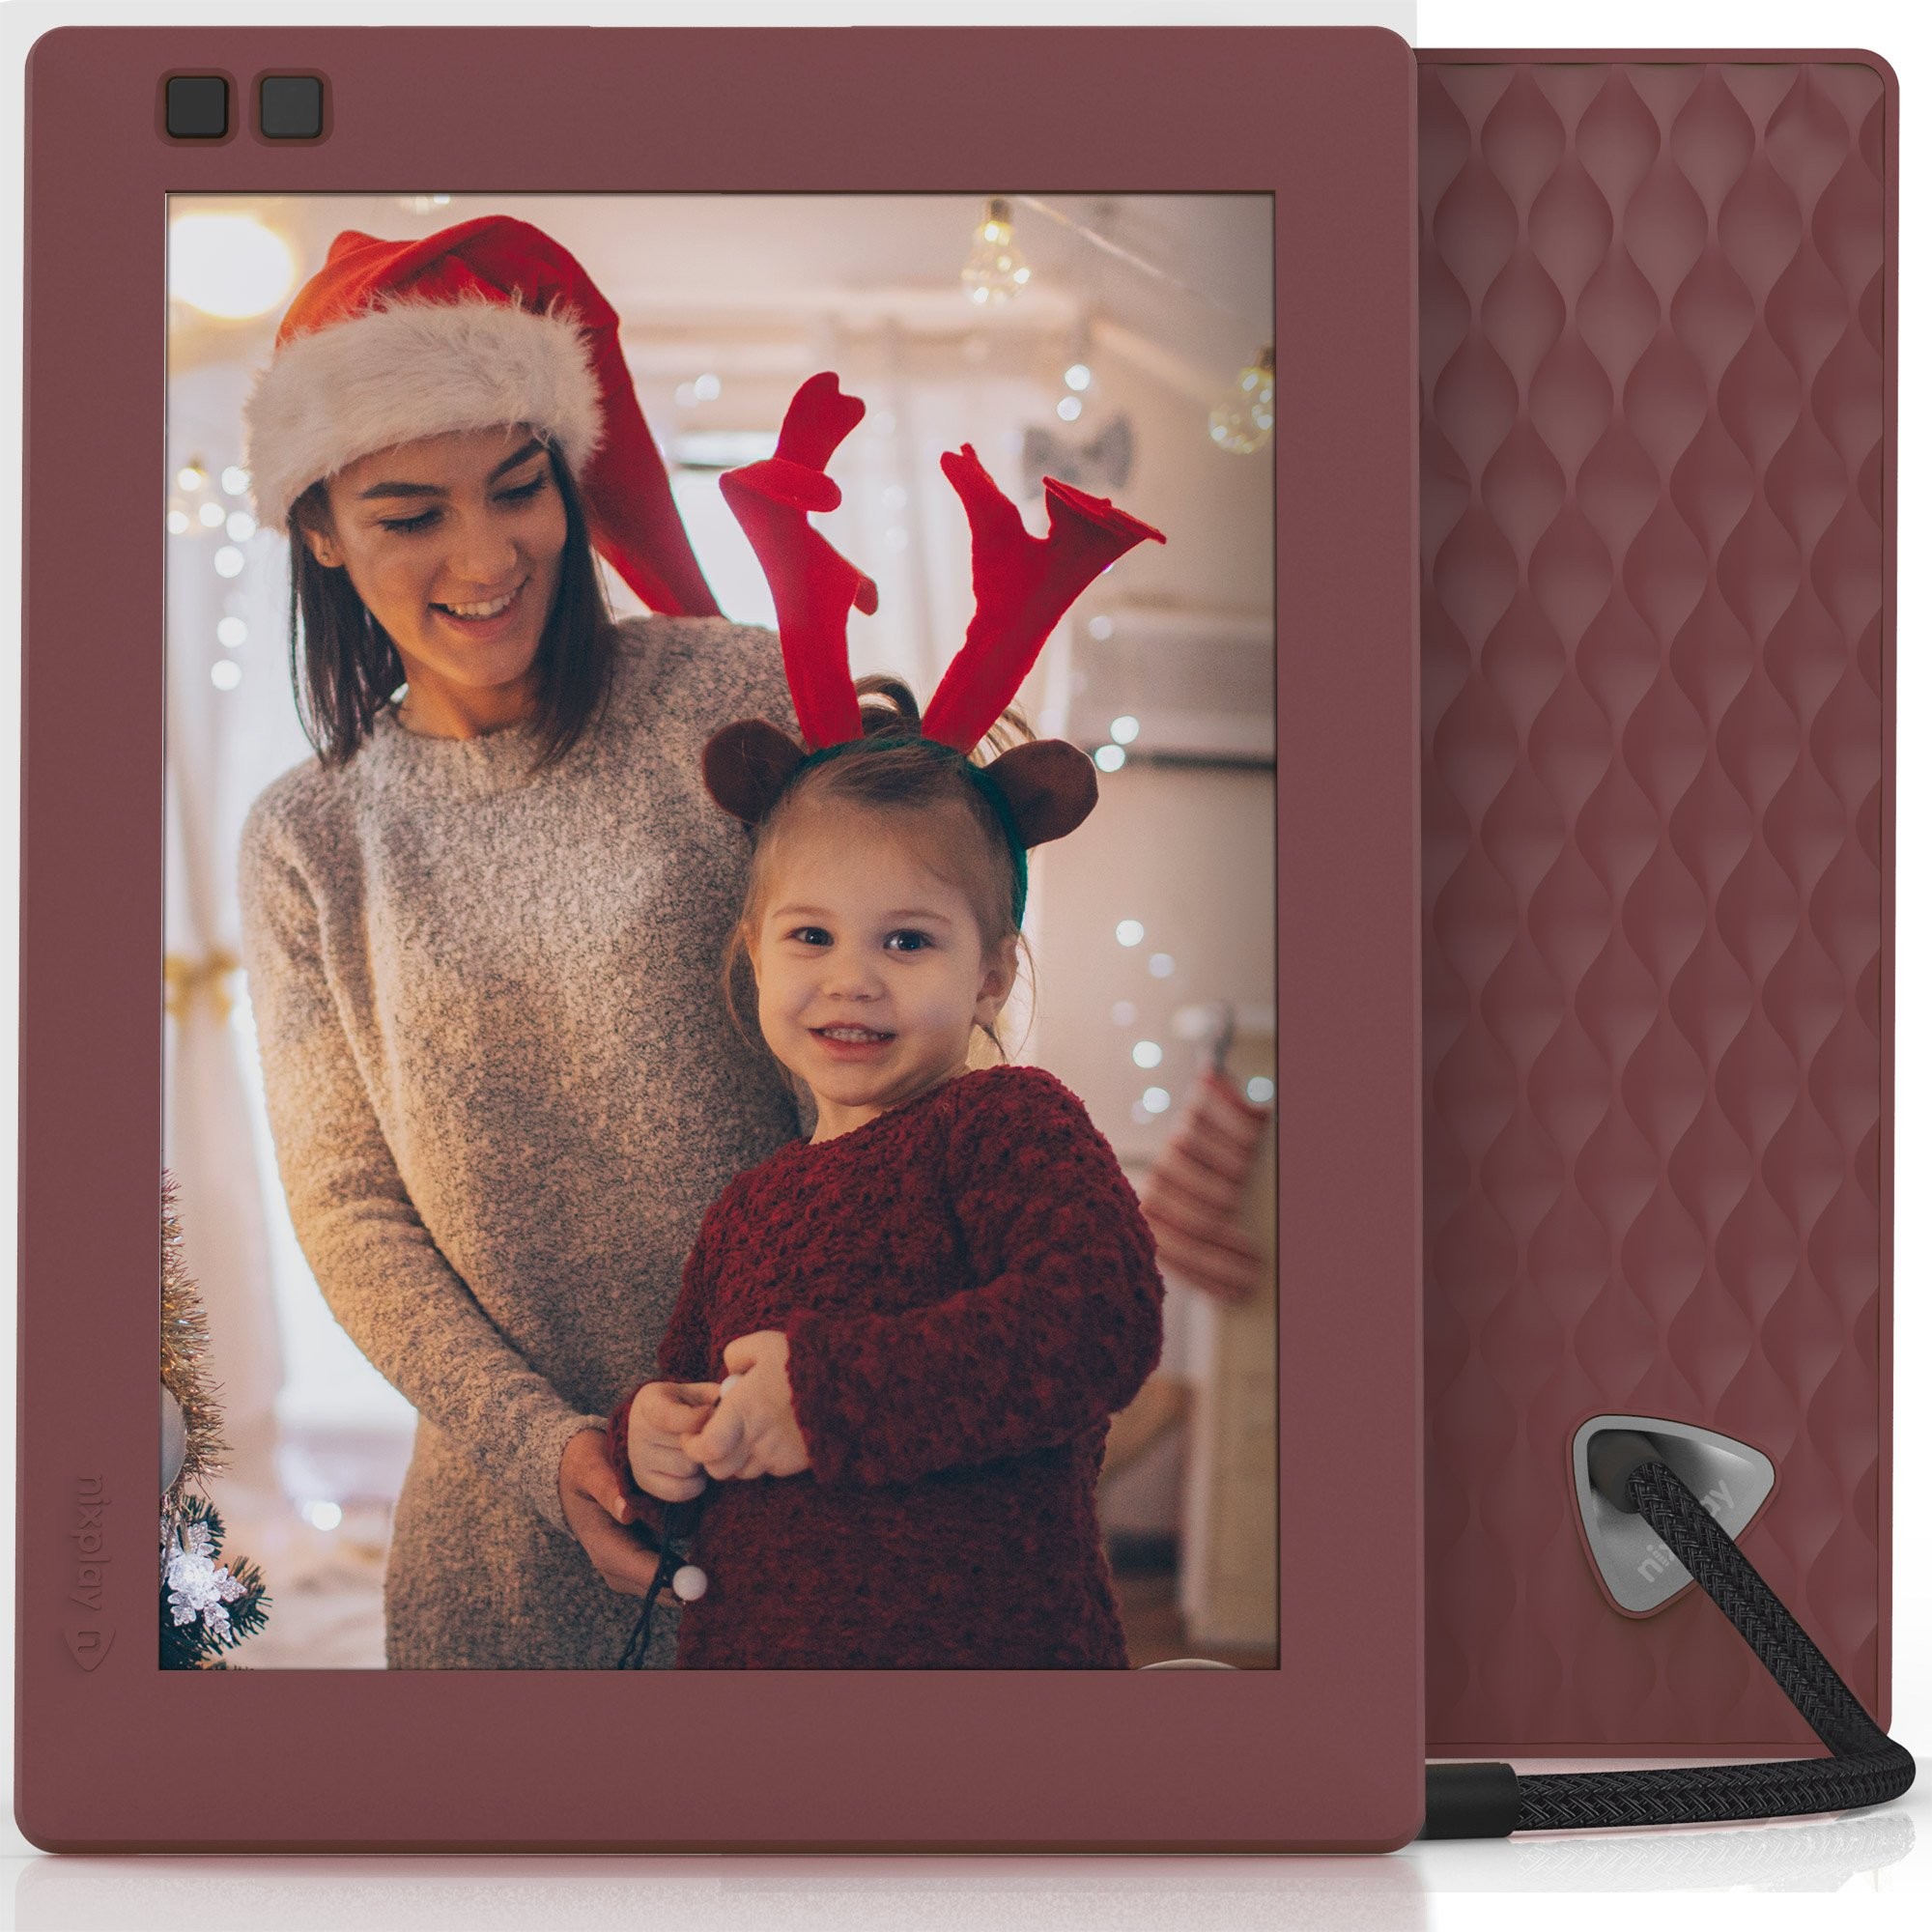 Nixplay Seed 8 inch WiFi Digital Photo Frame - Mulberry by nixplay